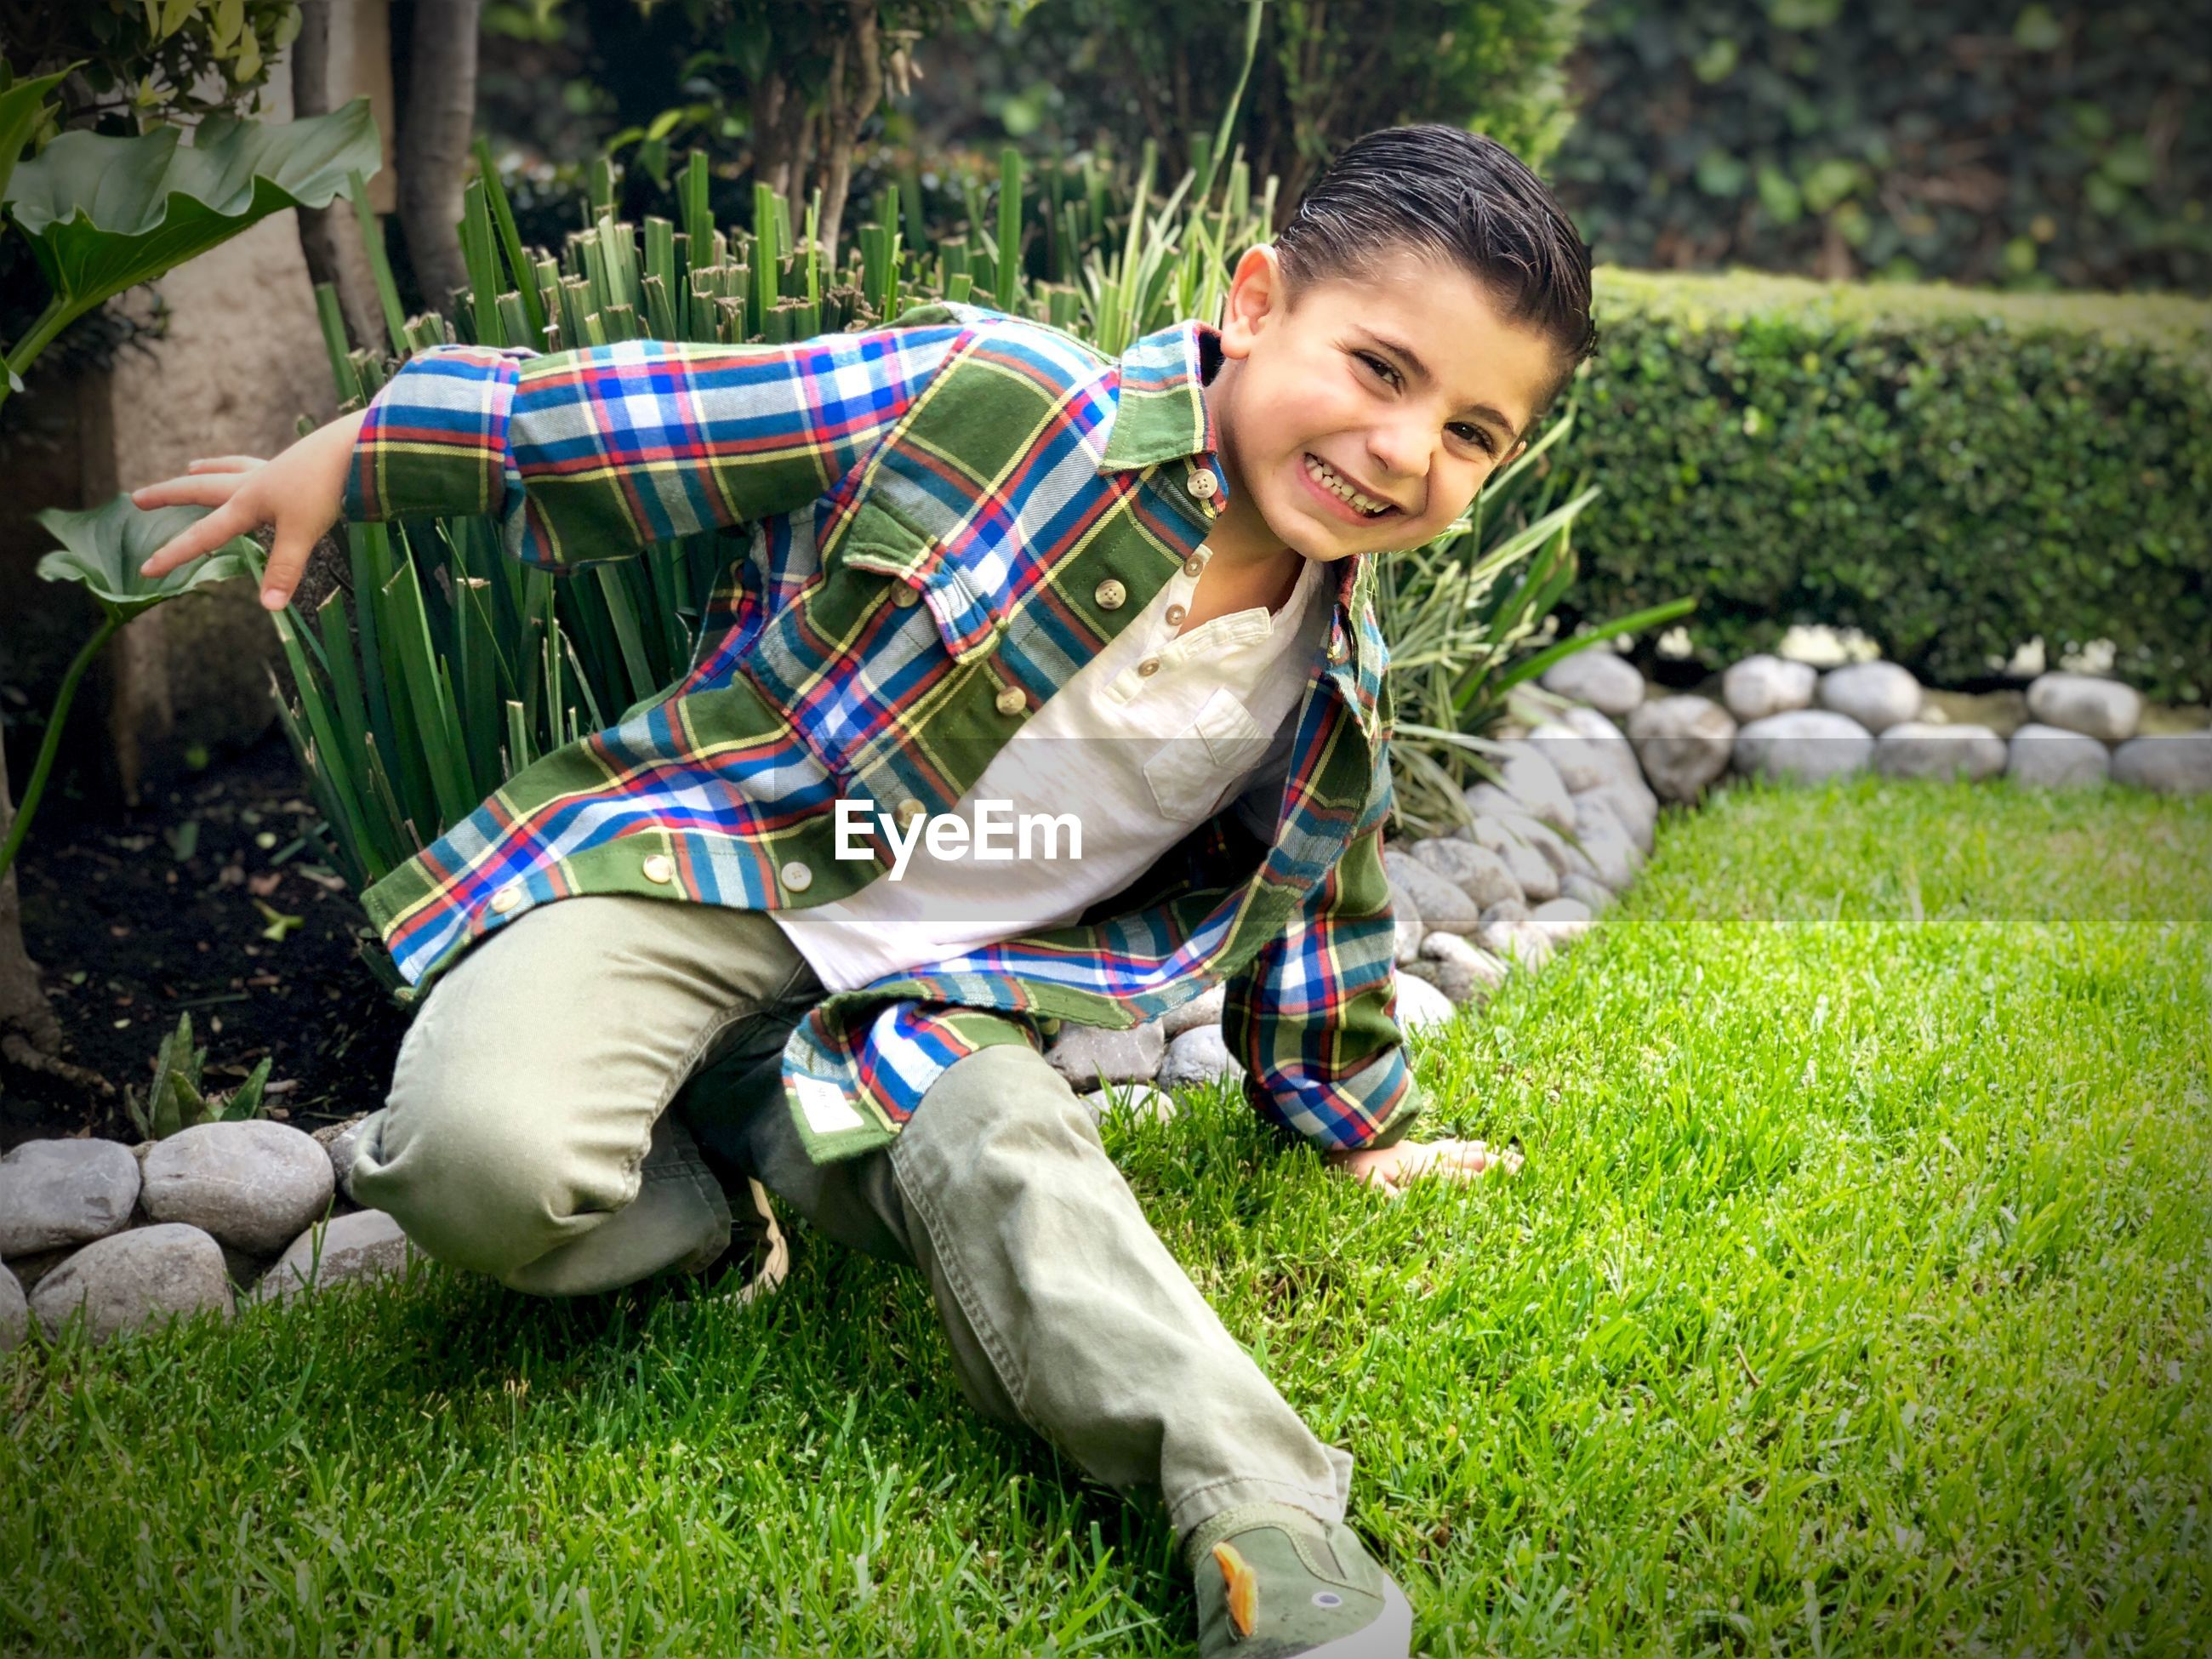 Portrait of smiling boy playing on field